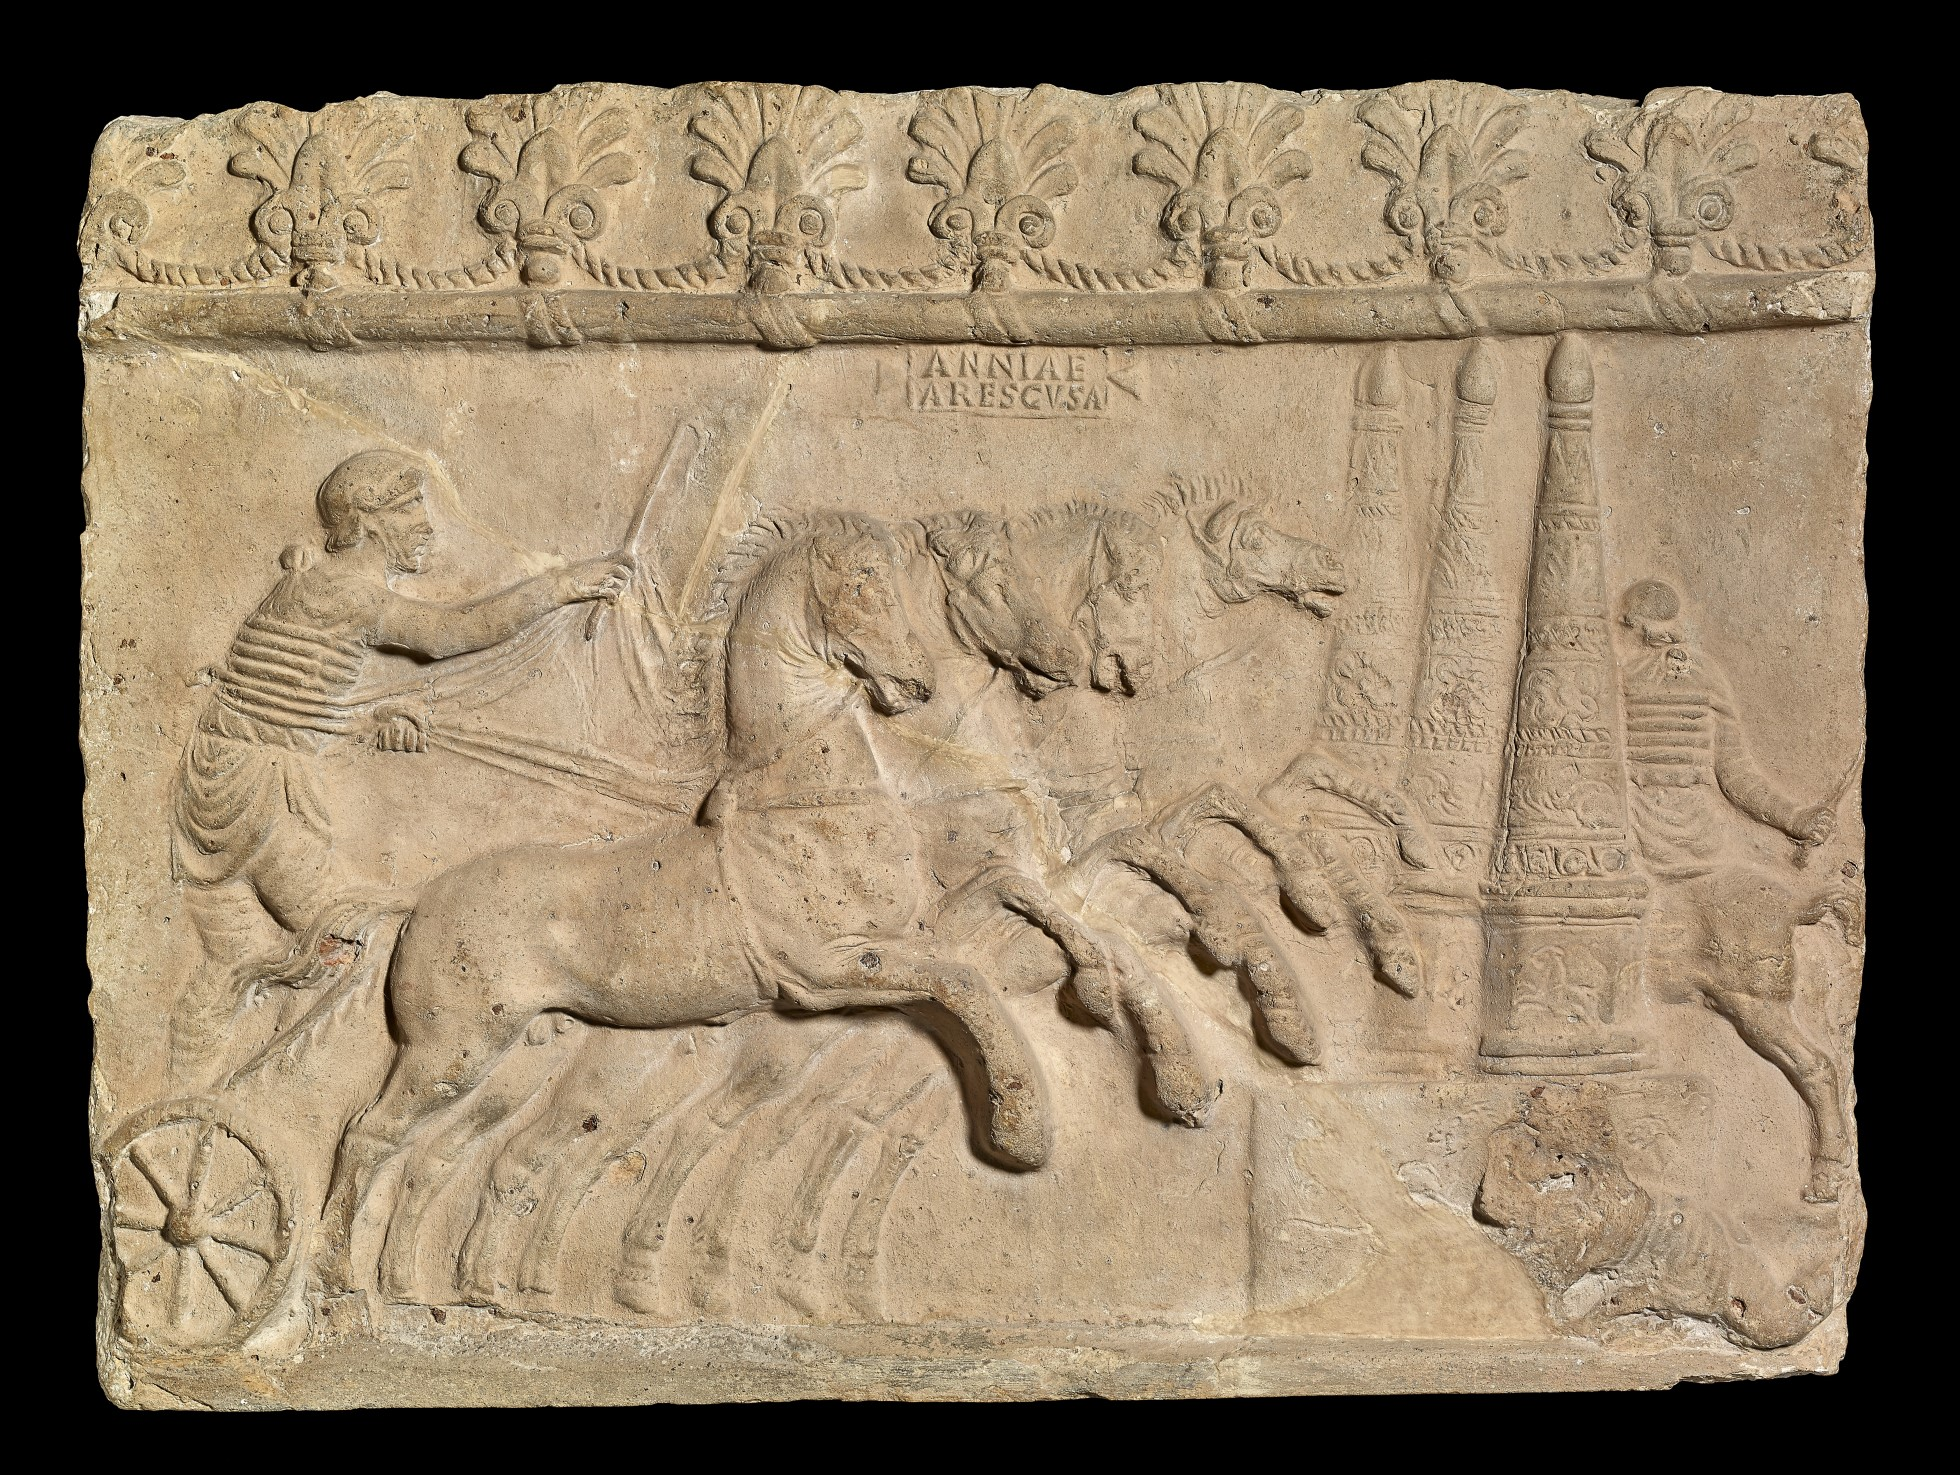 A cream coloured terracotta relief showing a chariot-race. A four-horsed chariot approaches the three columns of the turning-post. The charioteer wears a cap, leggings, and a short tunic with fasciae (protective leather straps). The reins are passed tightly around his waist. A jubilator, a rider who encourages the contestants, has already turned. A charioteer, fallen from his chariot, crouches at the base of the turning-post.